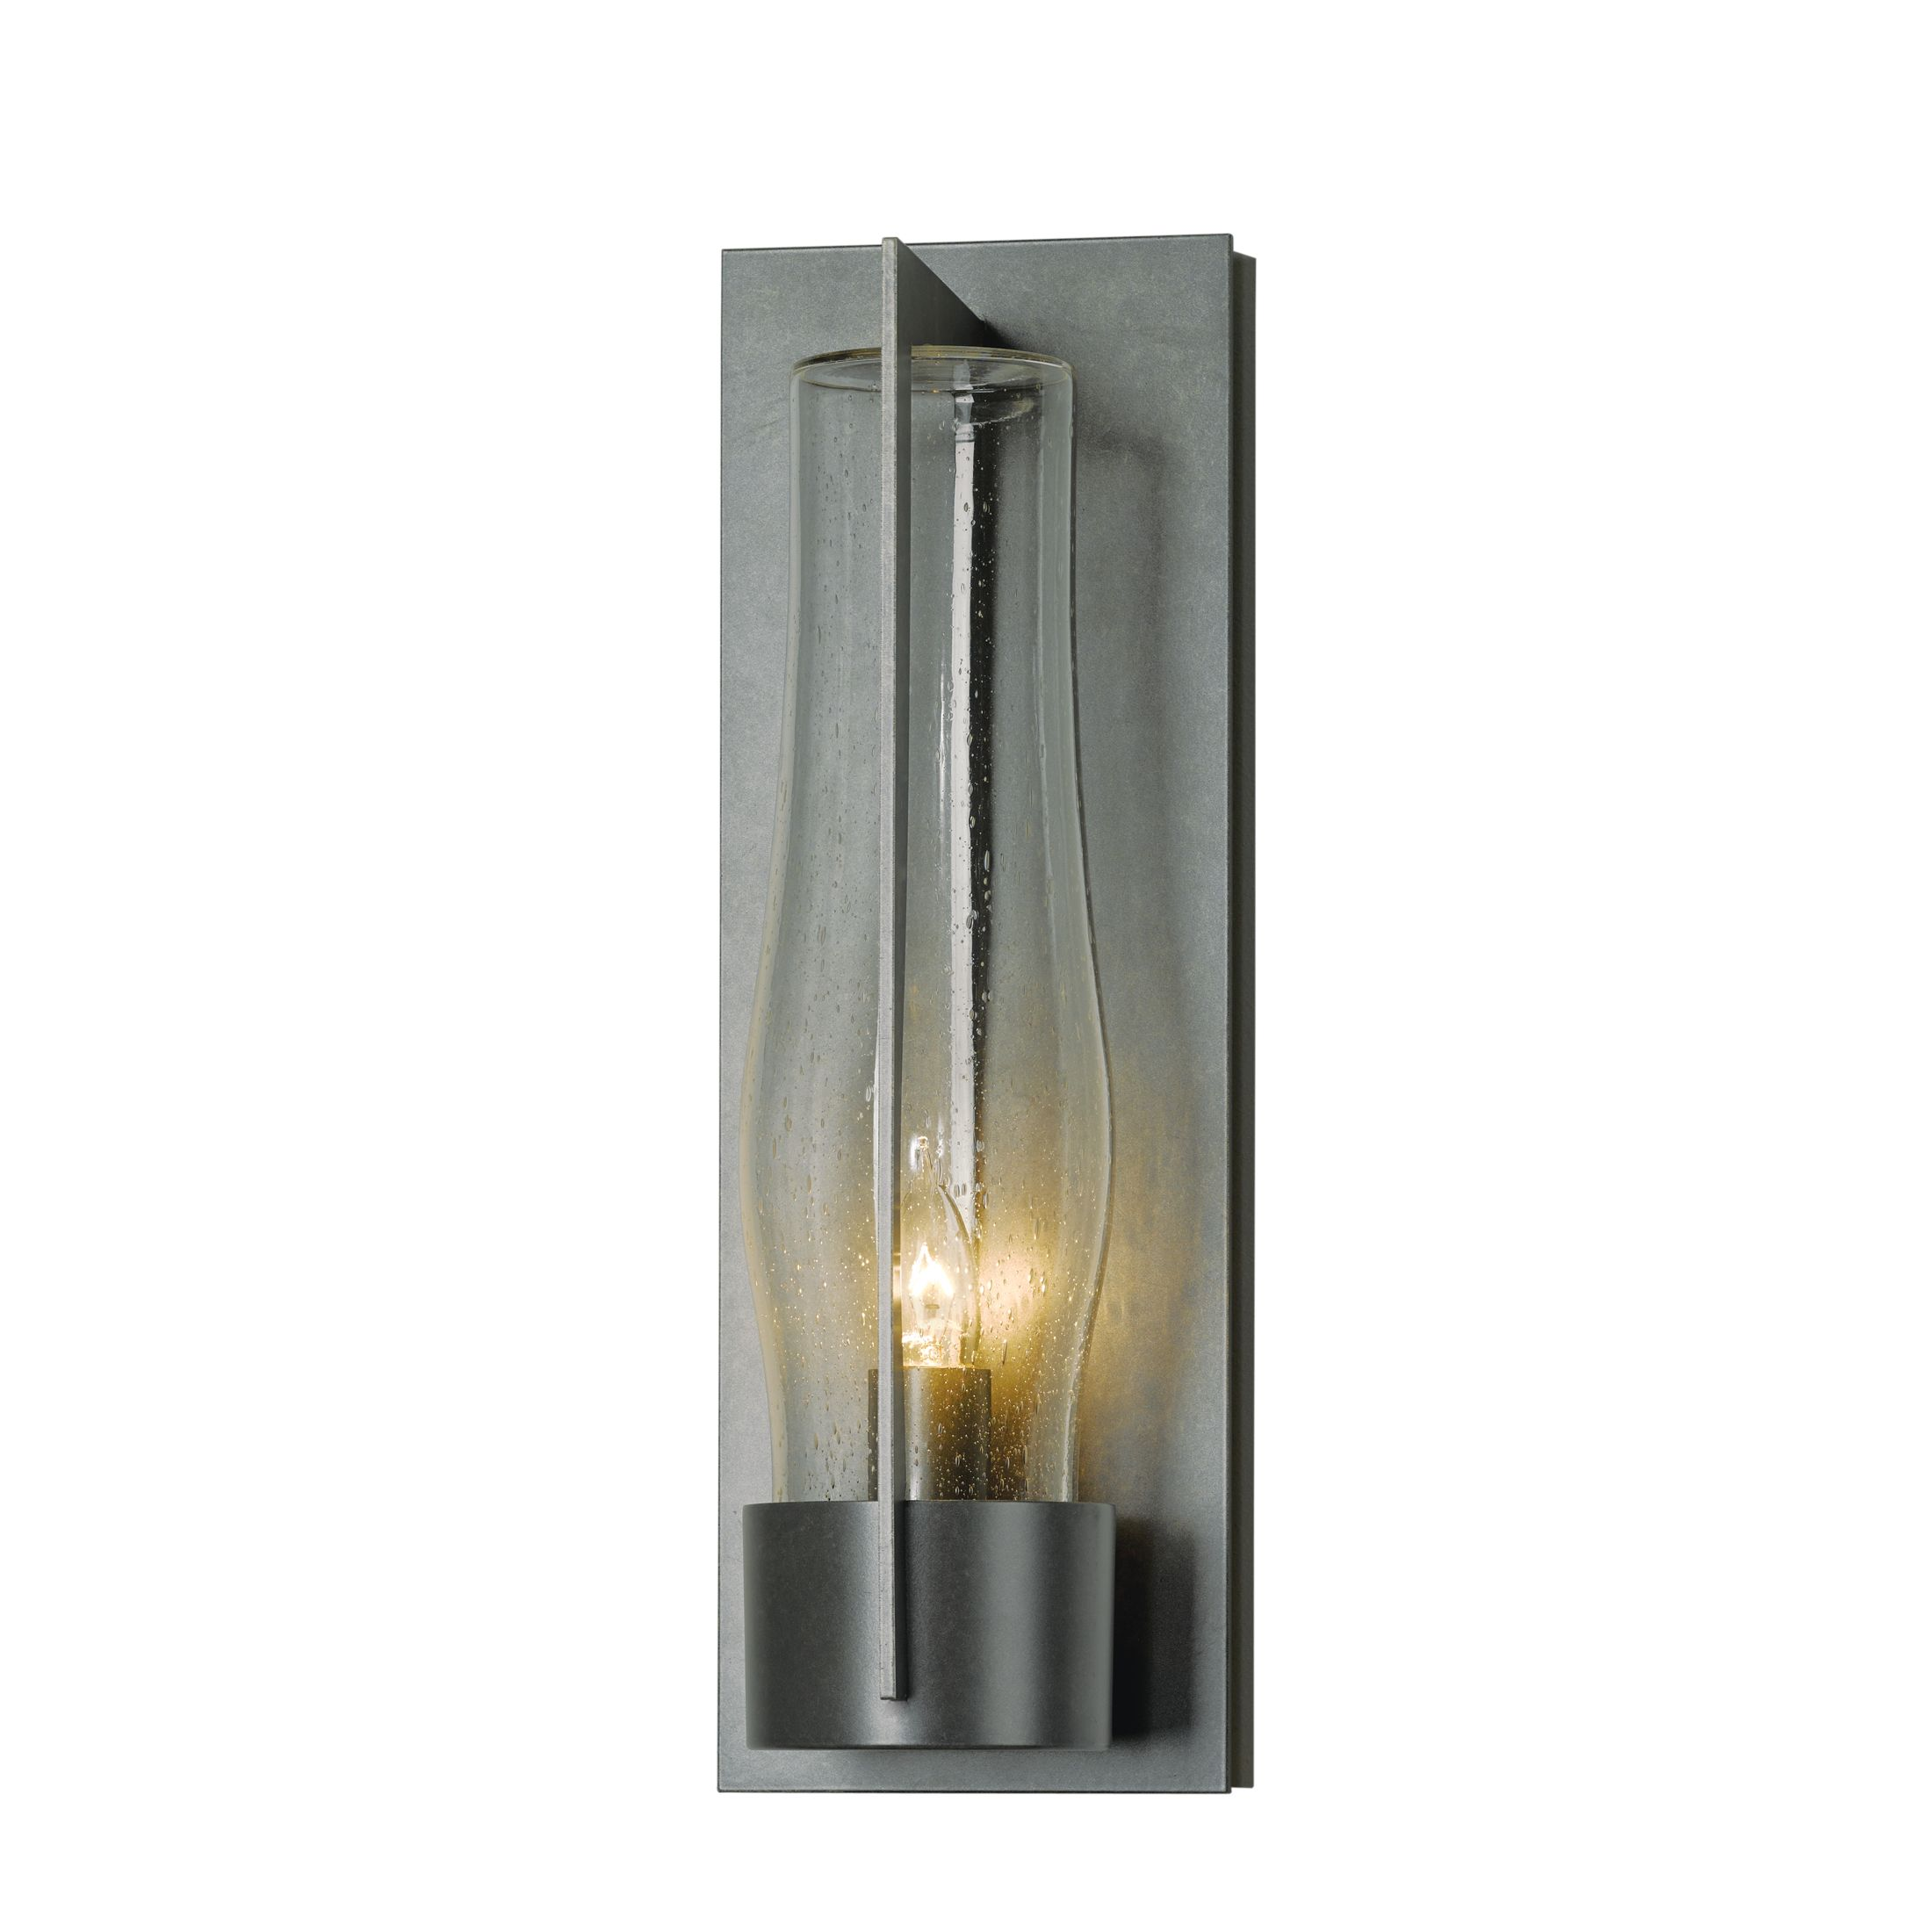 Thumbnail for Harbor Large Interior Sconce